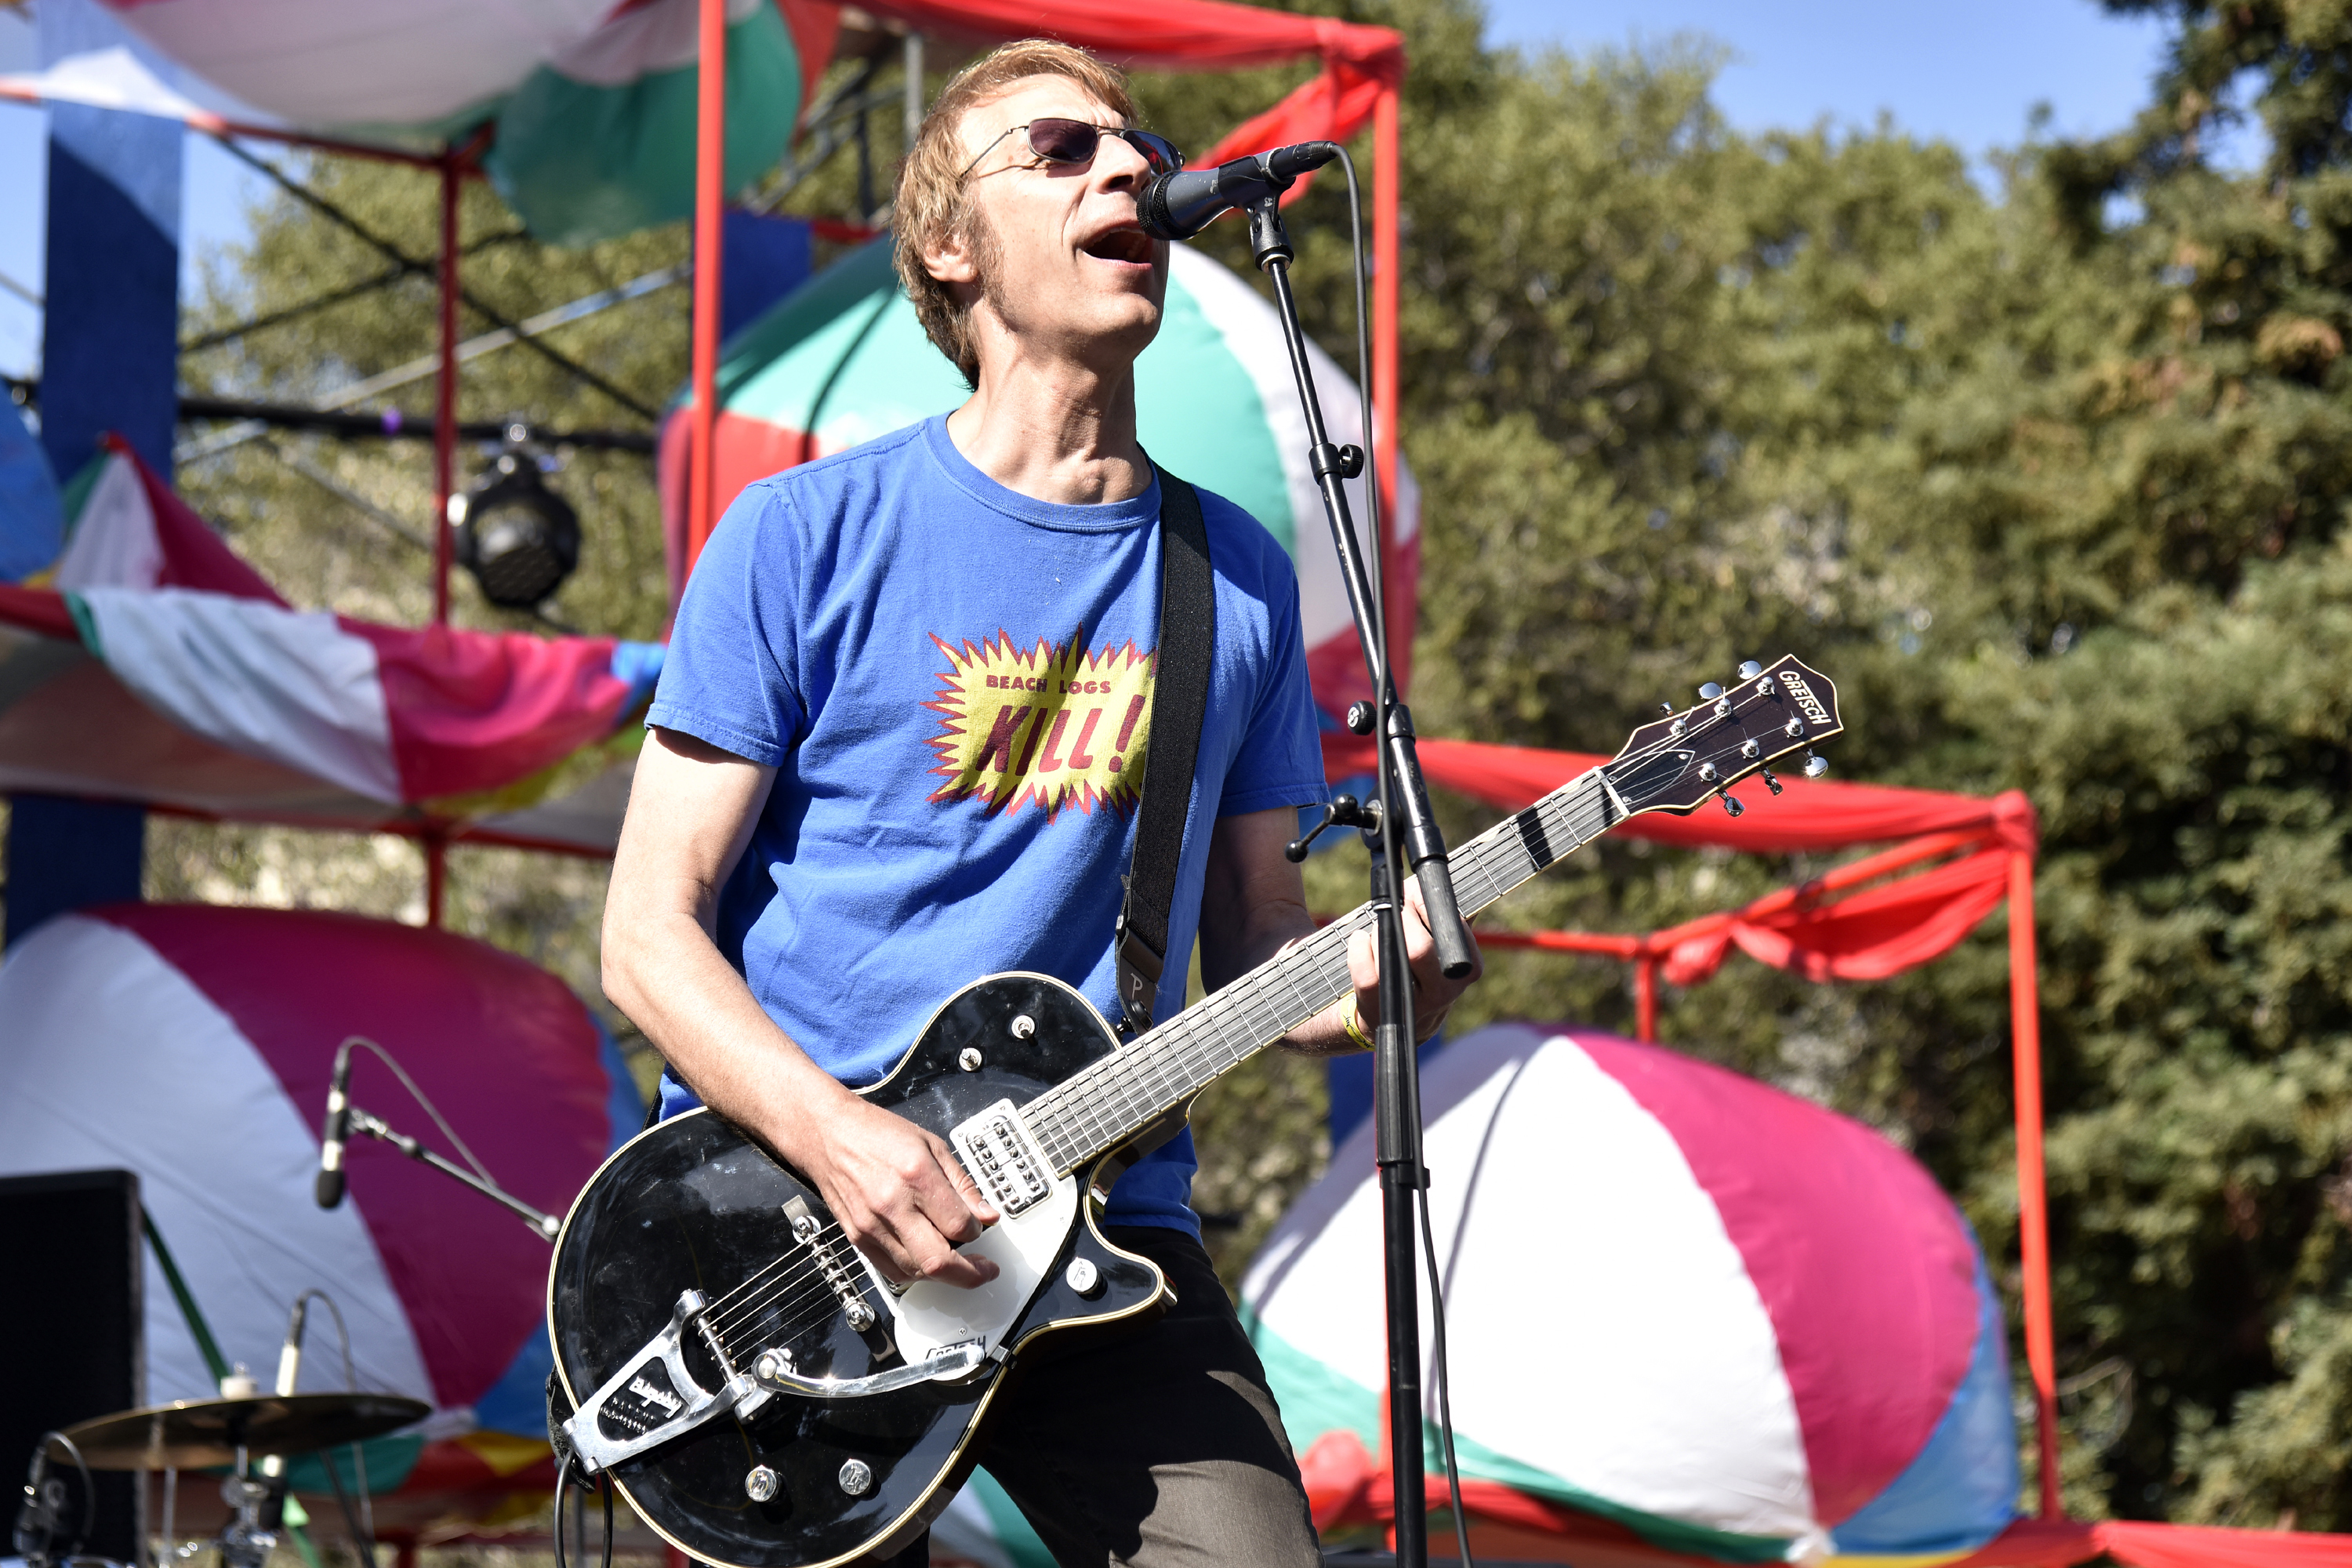 Mudhoney's Mark Arm: My Favorite 'Grungy' Albums – Rolling Stone